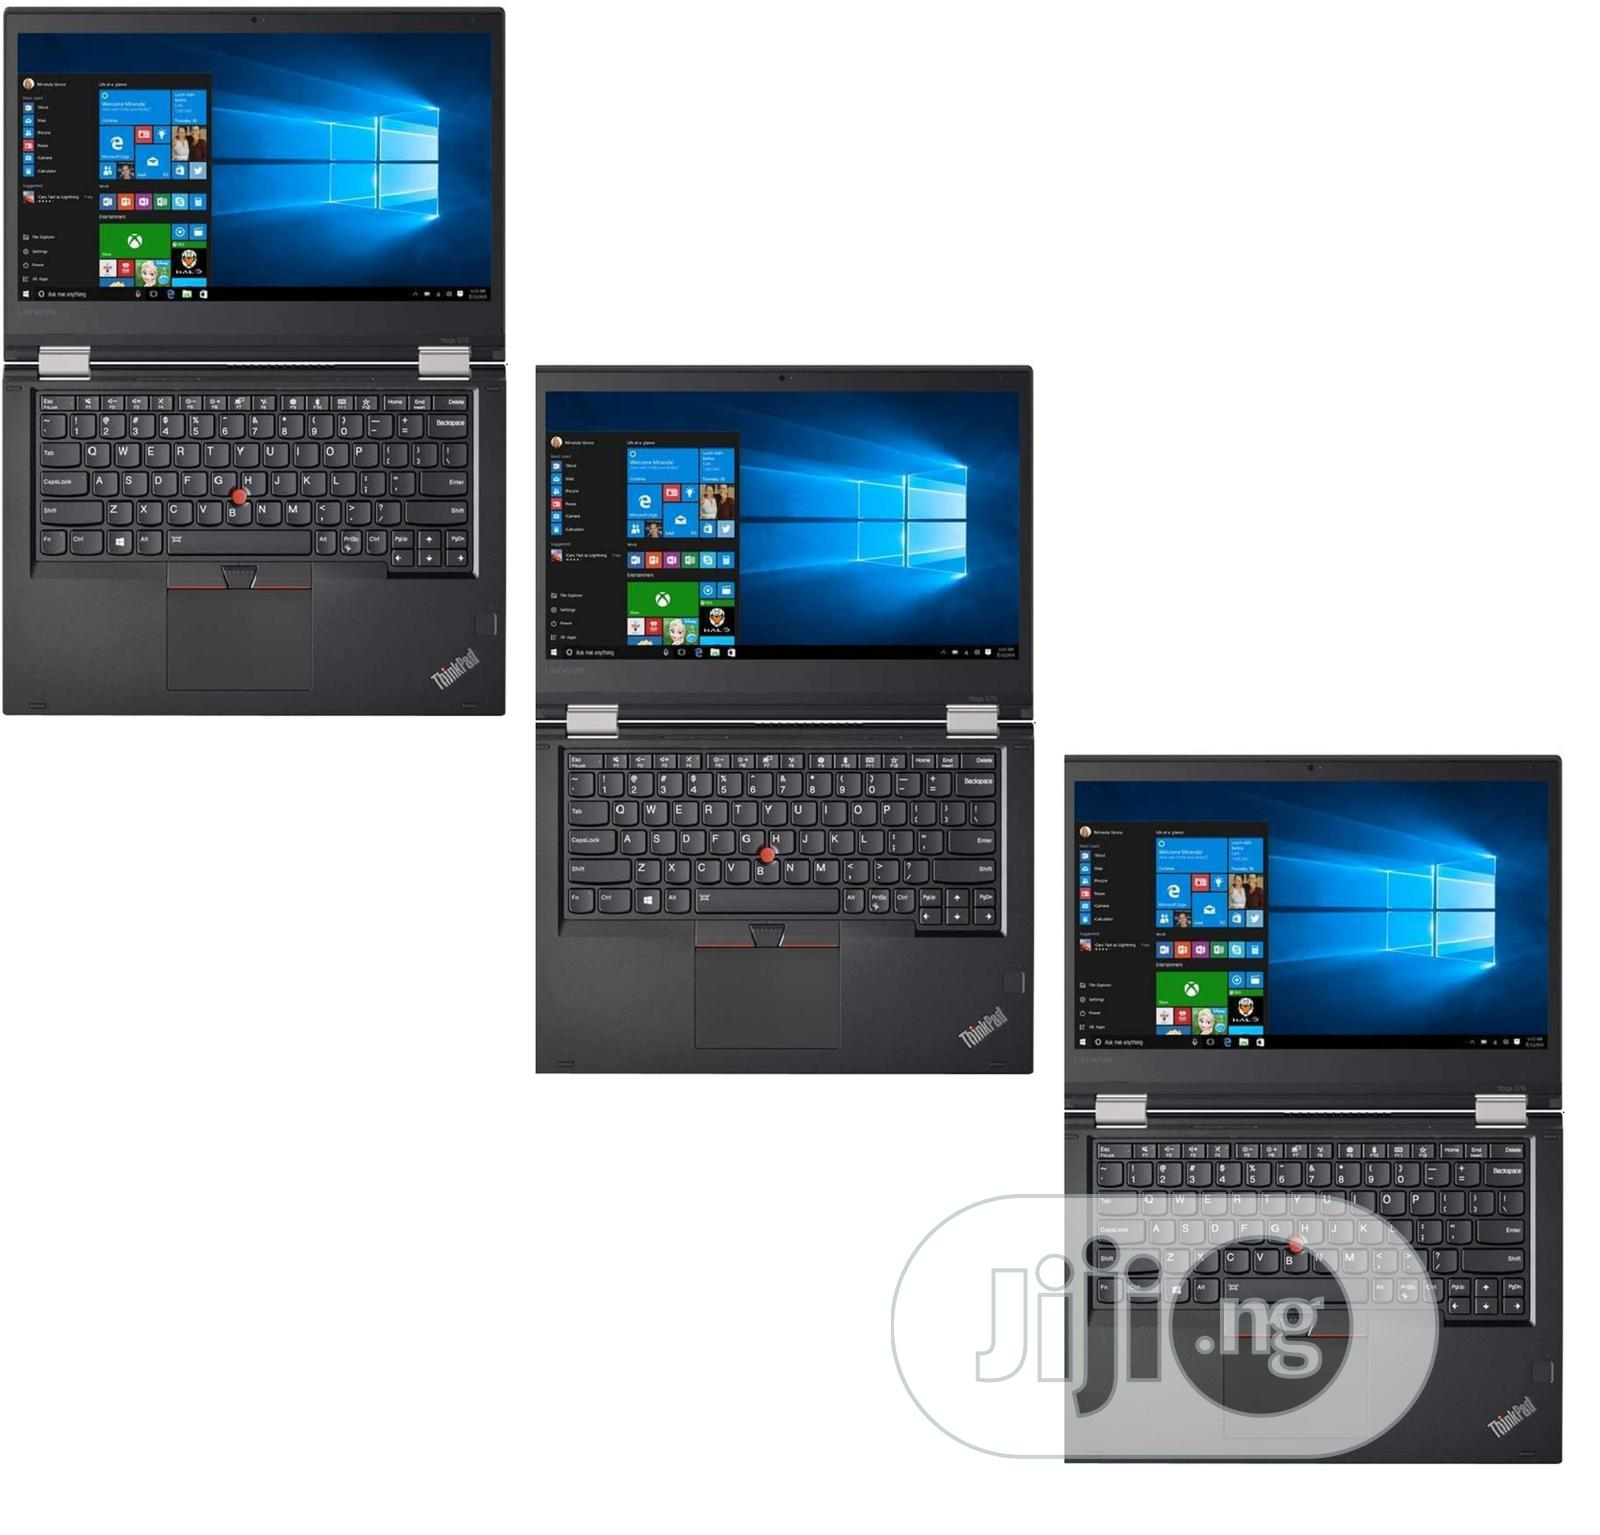 New Laptop Lenovo 8GB Intel Core i7 SSD 256GB   Laptops & Computers for sale in Ikeja, Lagos State, Nigeria